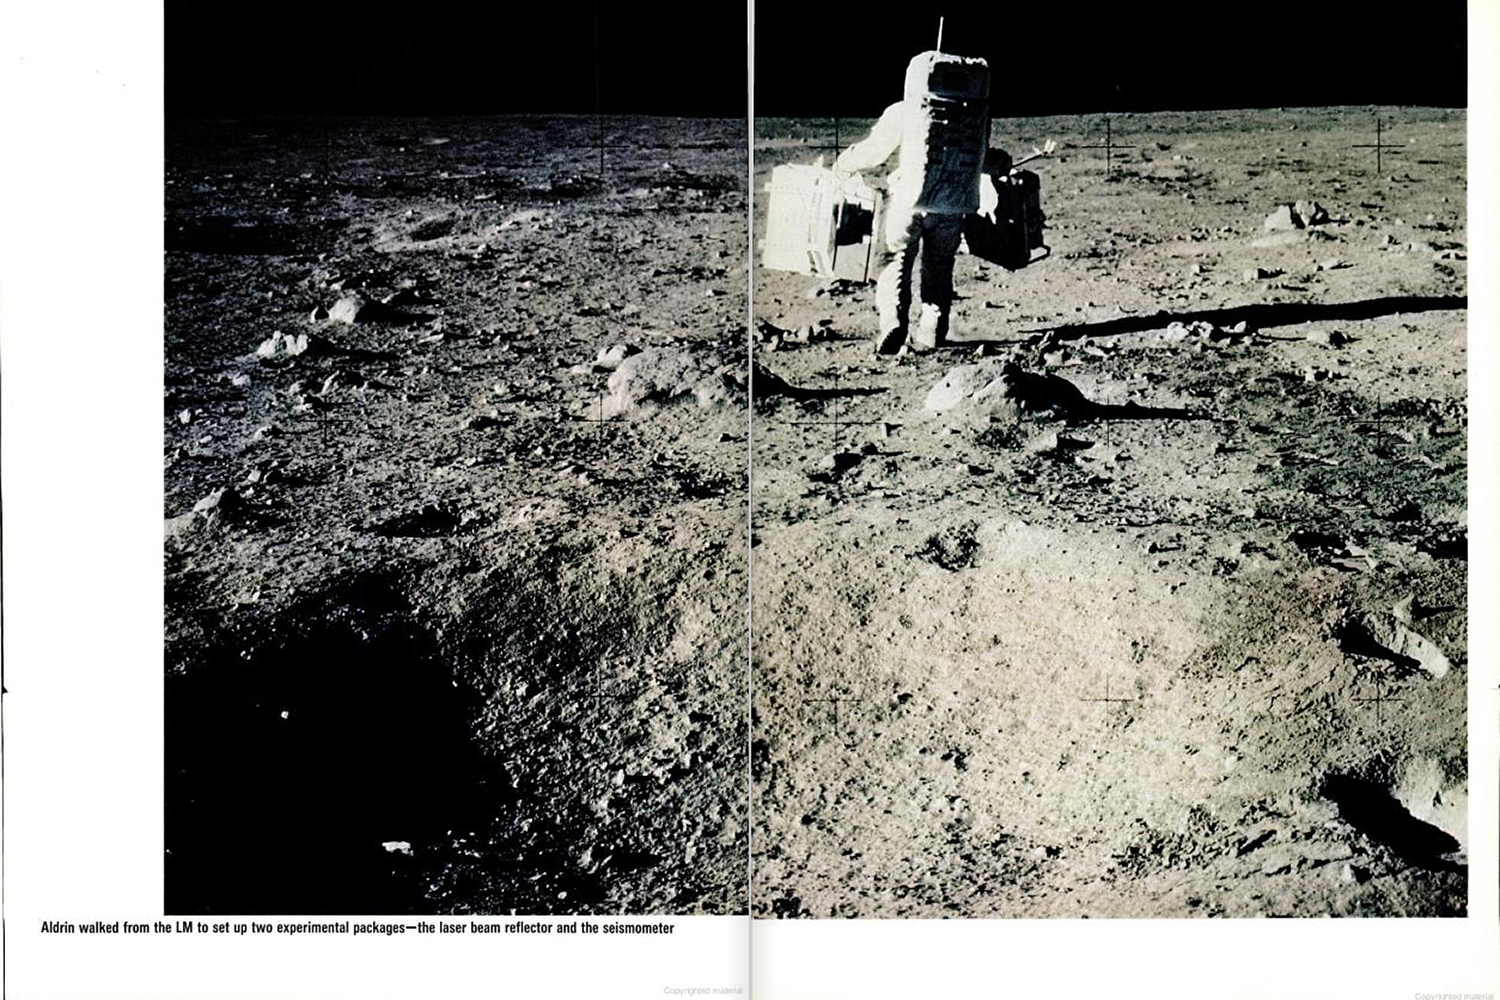 "<b>LIFE magazine Special Edition, August 11, 1969.</b> ""Aldrin walked from the Lunar Module to set up two experimental packages — the laser beam reflector and the seisometer."""